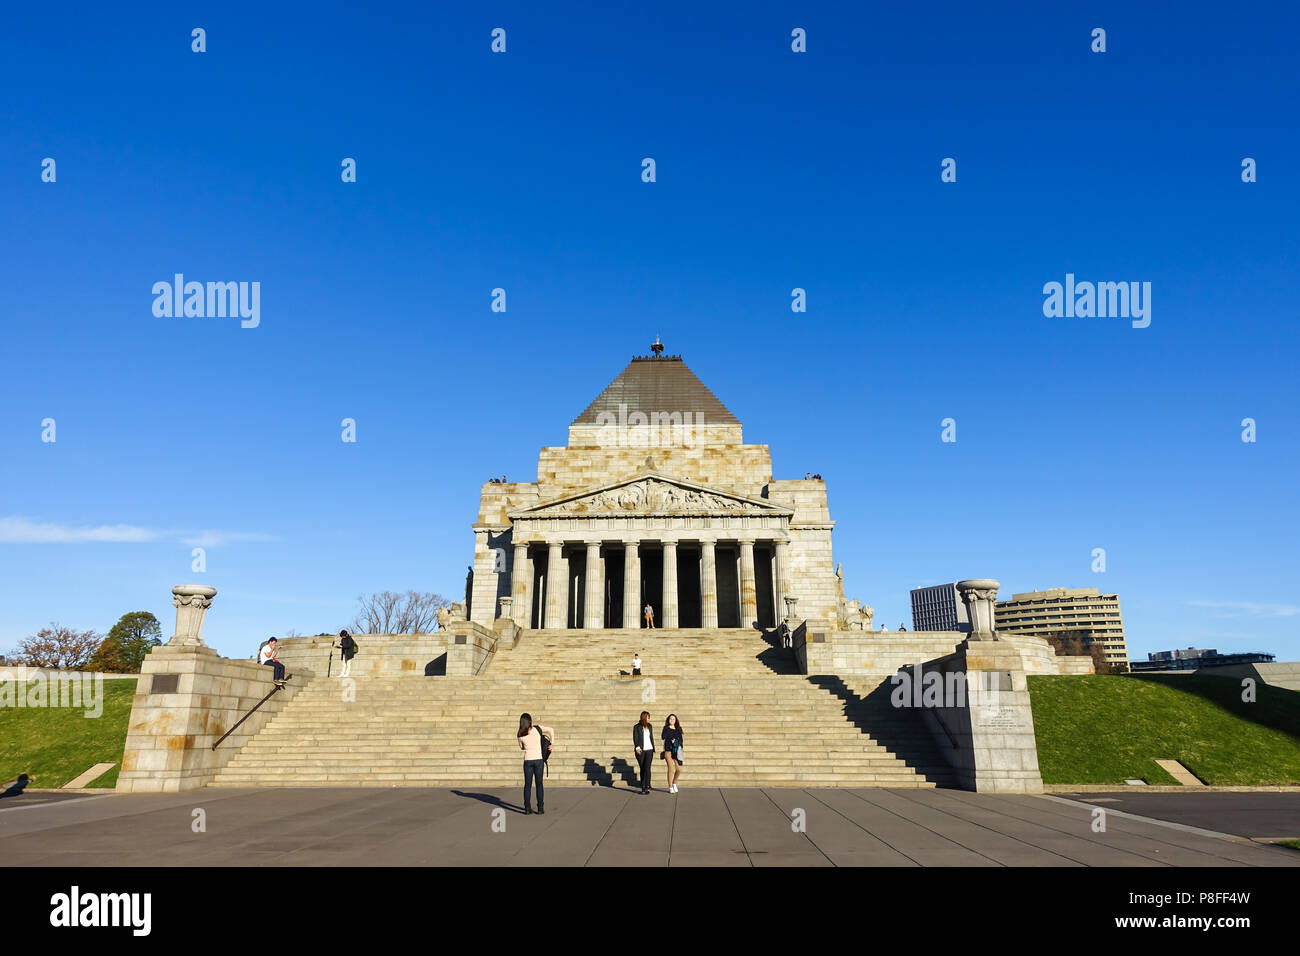 Historic building of Shrine of Remembrance. It is a war memorial in Melbourne, Victoria, Australia. - Stock Image